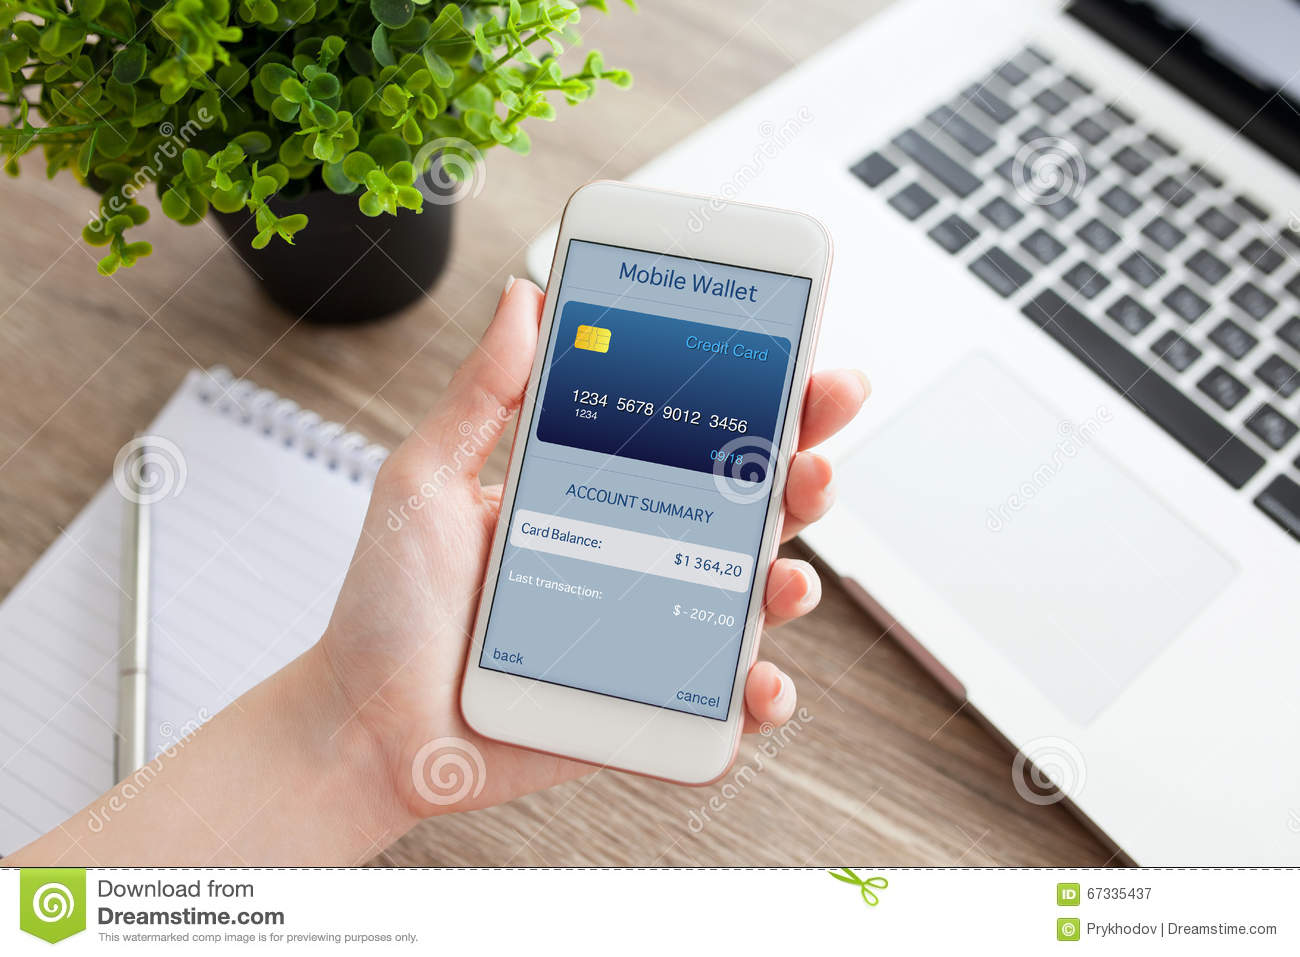 Female hand holding phone with app mobile wallet on screen